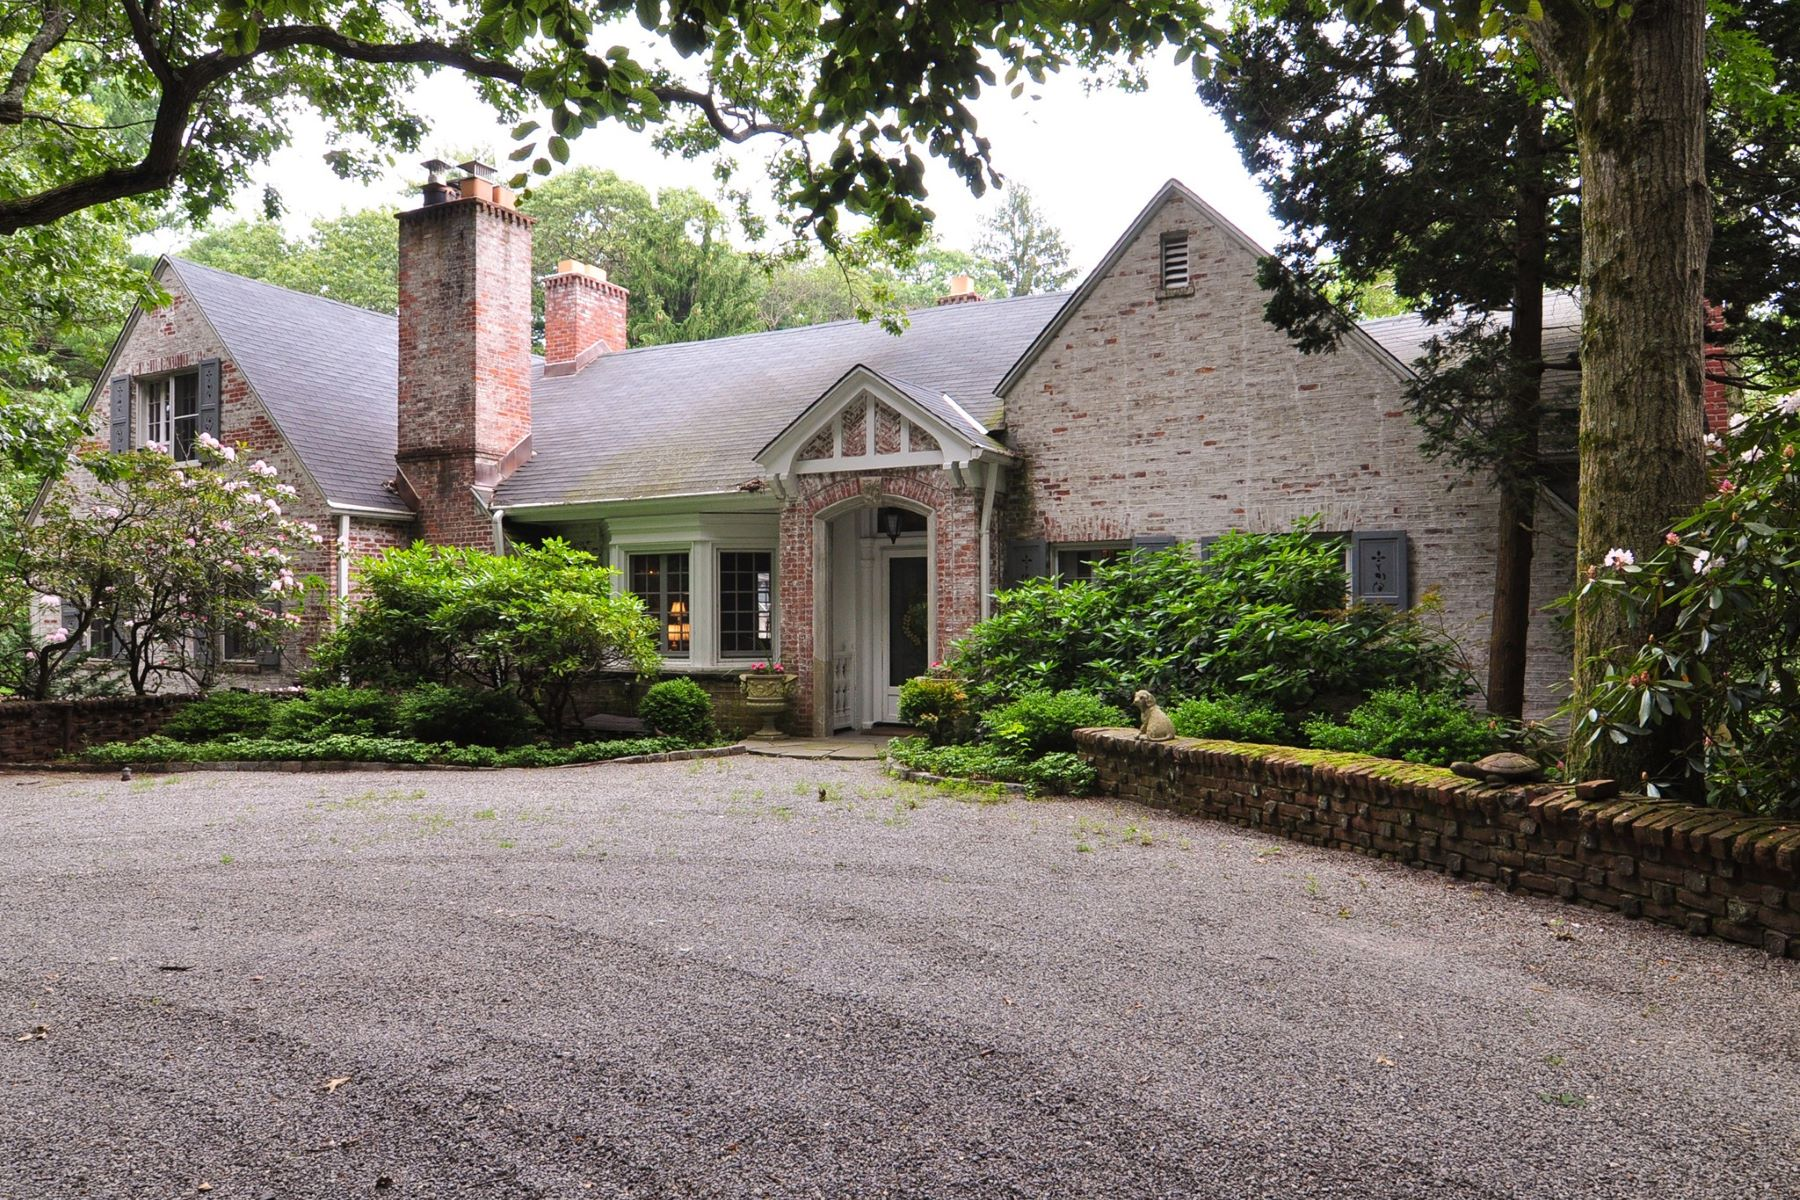 Single Family Home for Sale at 816 Chicken Valley Rd , Locust Valley, NY 11560 816 Chicken Valley Rd, Locust Valley, New York, 11560 United States